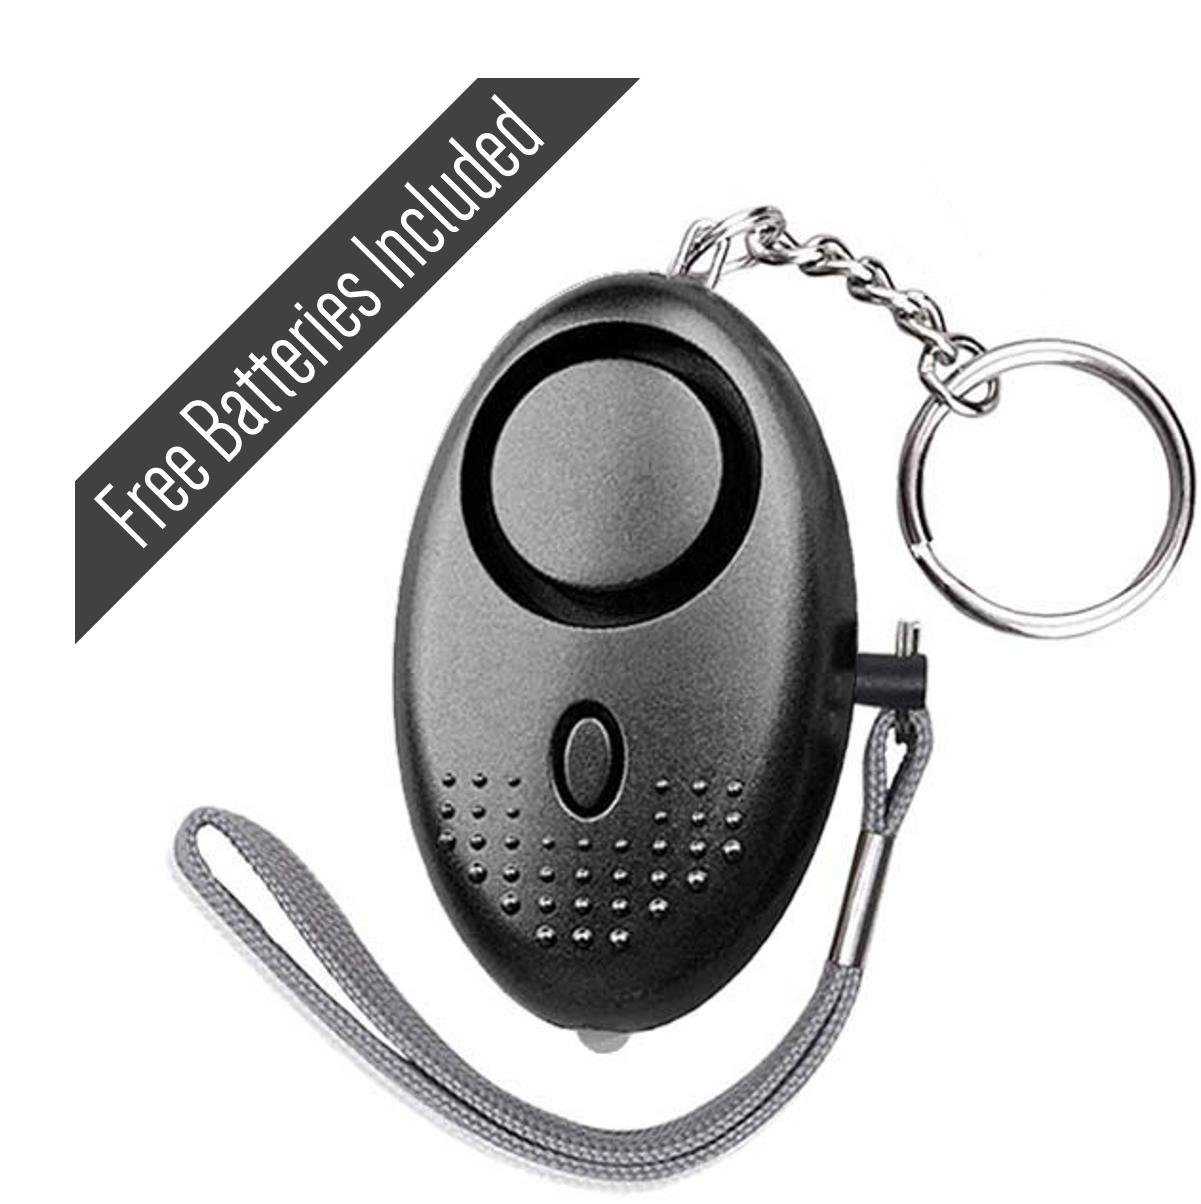 Home Security For Sale House Alarm Prices Brands Review In 230v Automatic Night Lamp Philippines